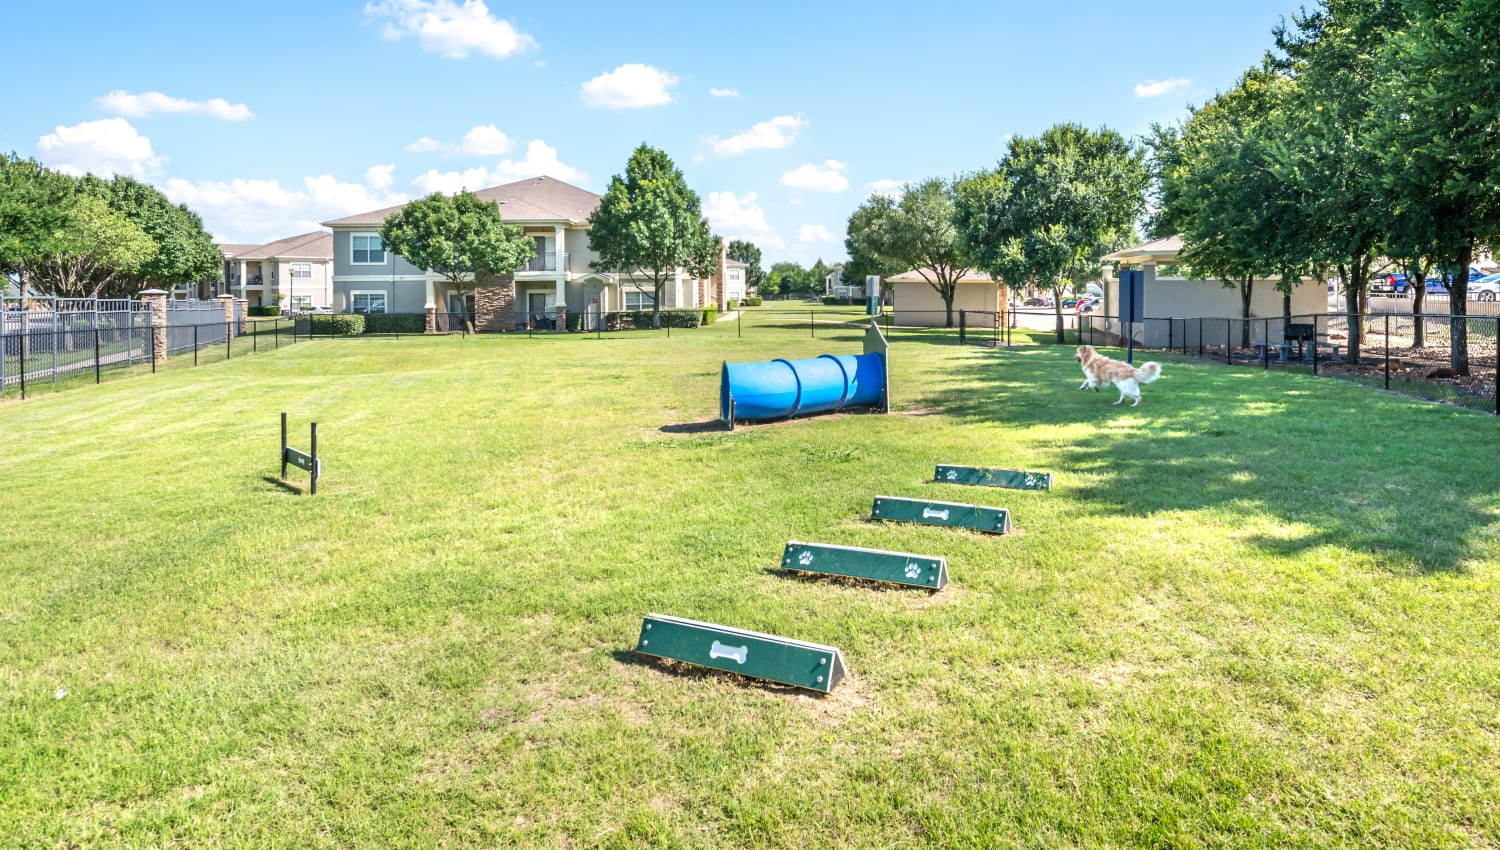 Agility course at the onsite bark park at Olympus Stone Glen in Keller, Texas